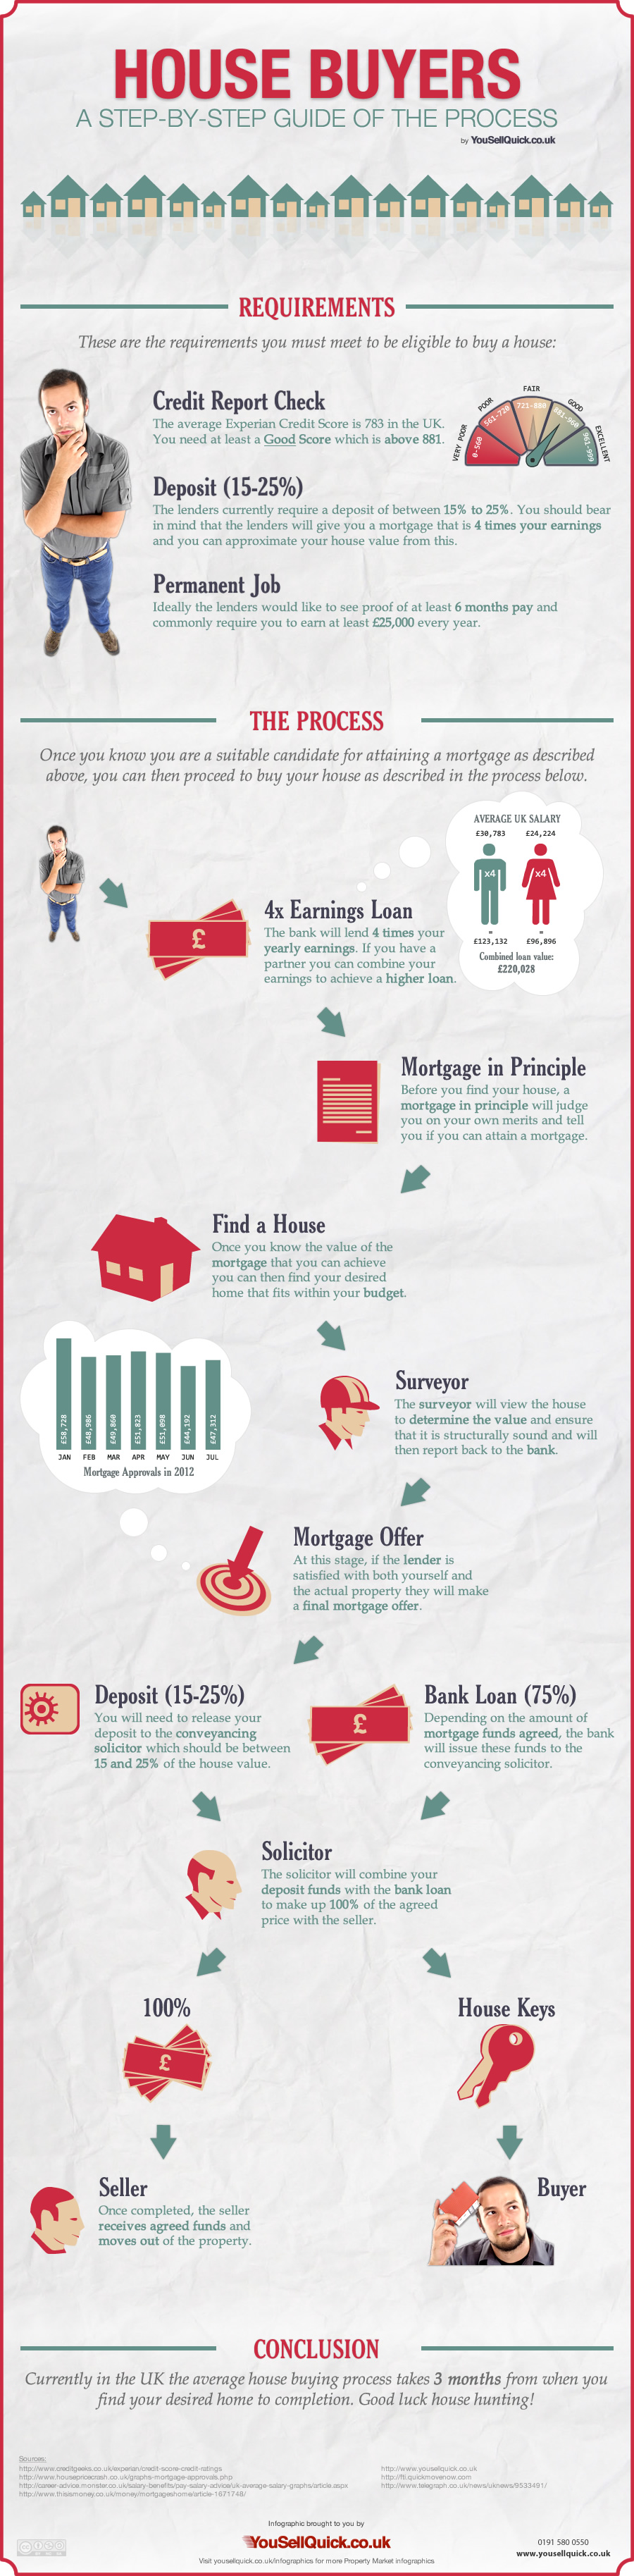 house-buyers-step-by-step-guide-of-buying-a-house